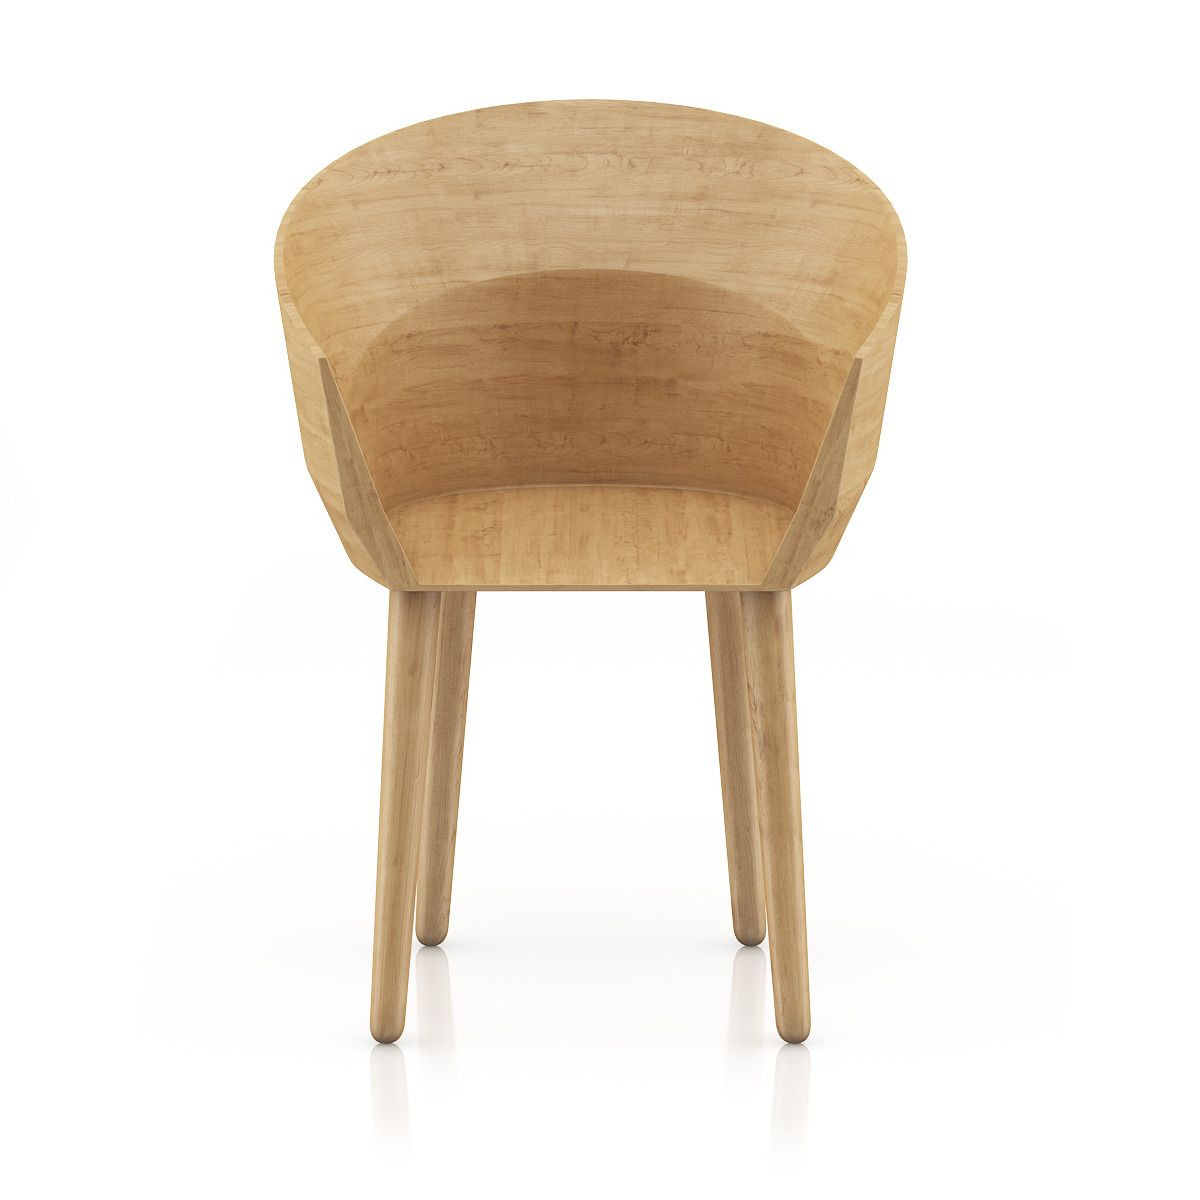 Wooden Chair 8  Wooden chair, Solid wood chairs, Wood chair